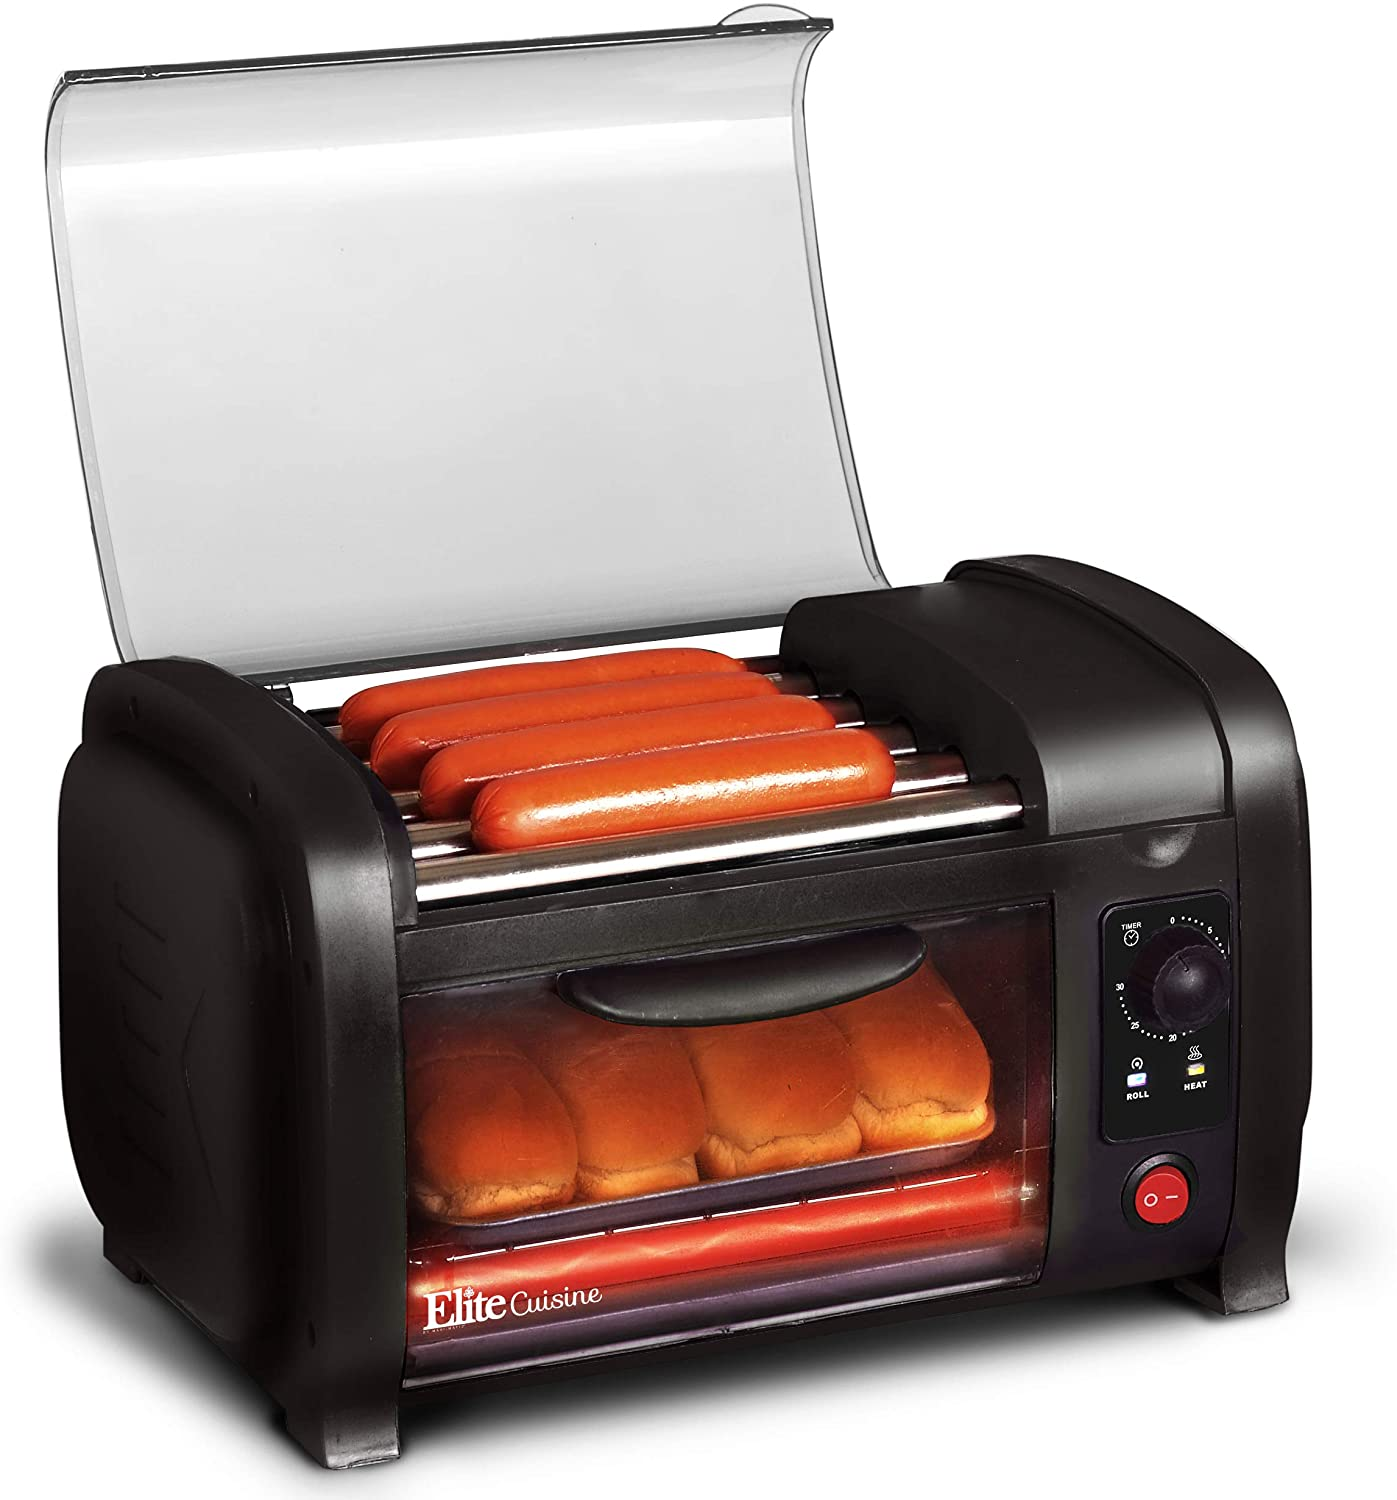 Elite Cuisine EHD-051B Hot Dog Toaster Oven